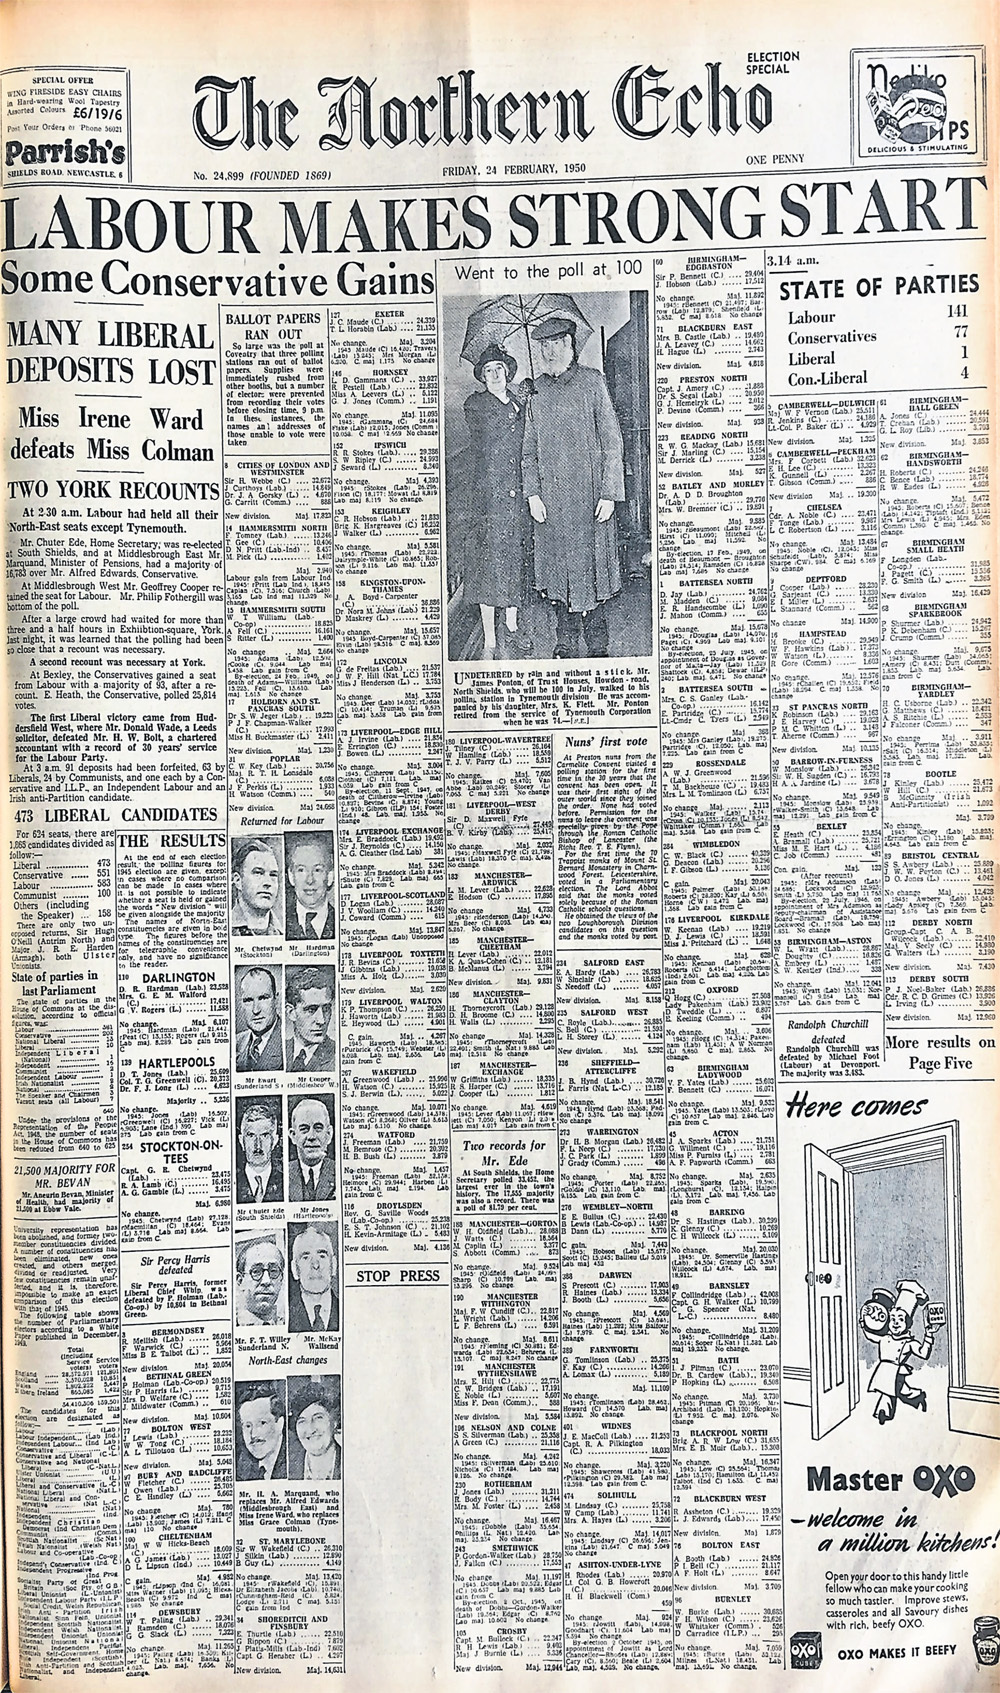 The Northern Echo's front page as the results of the 1950 General Election were coming in.